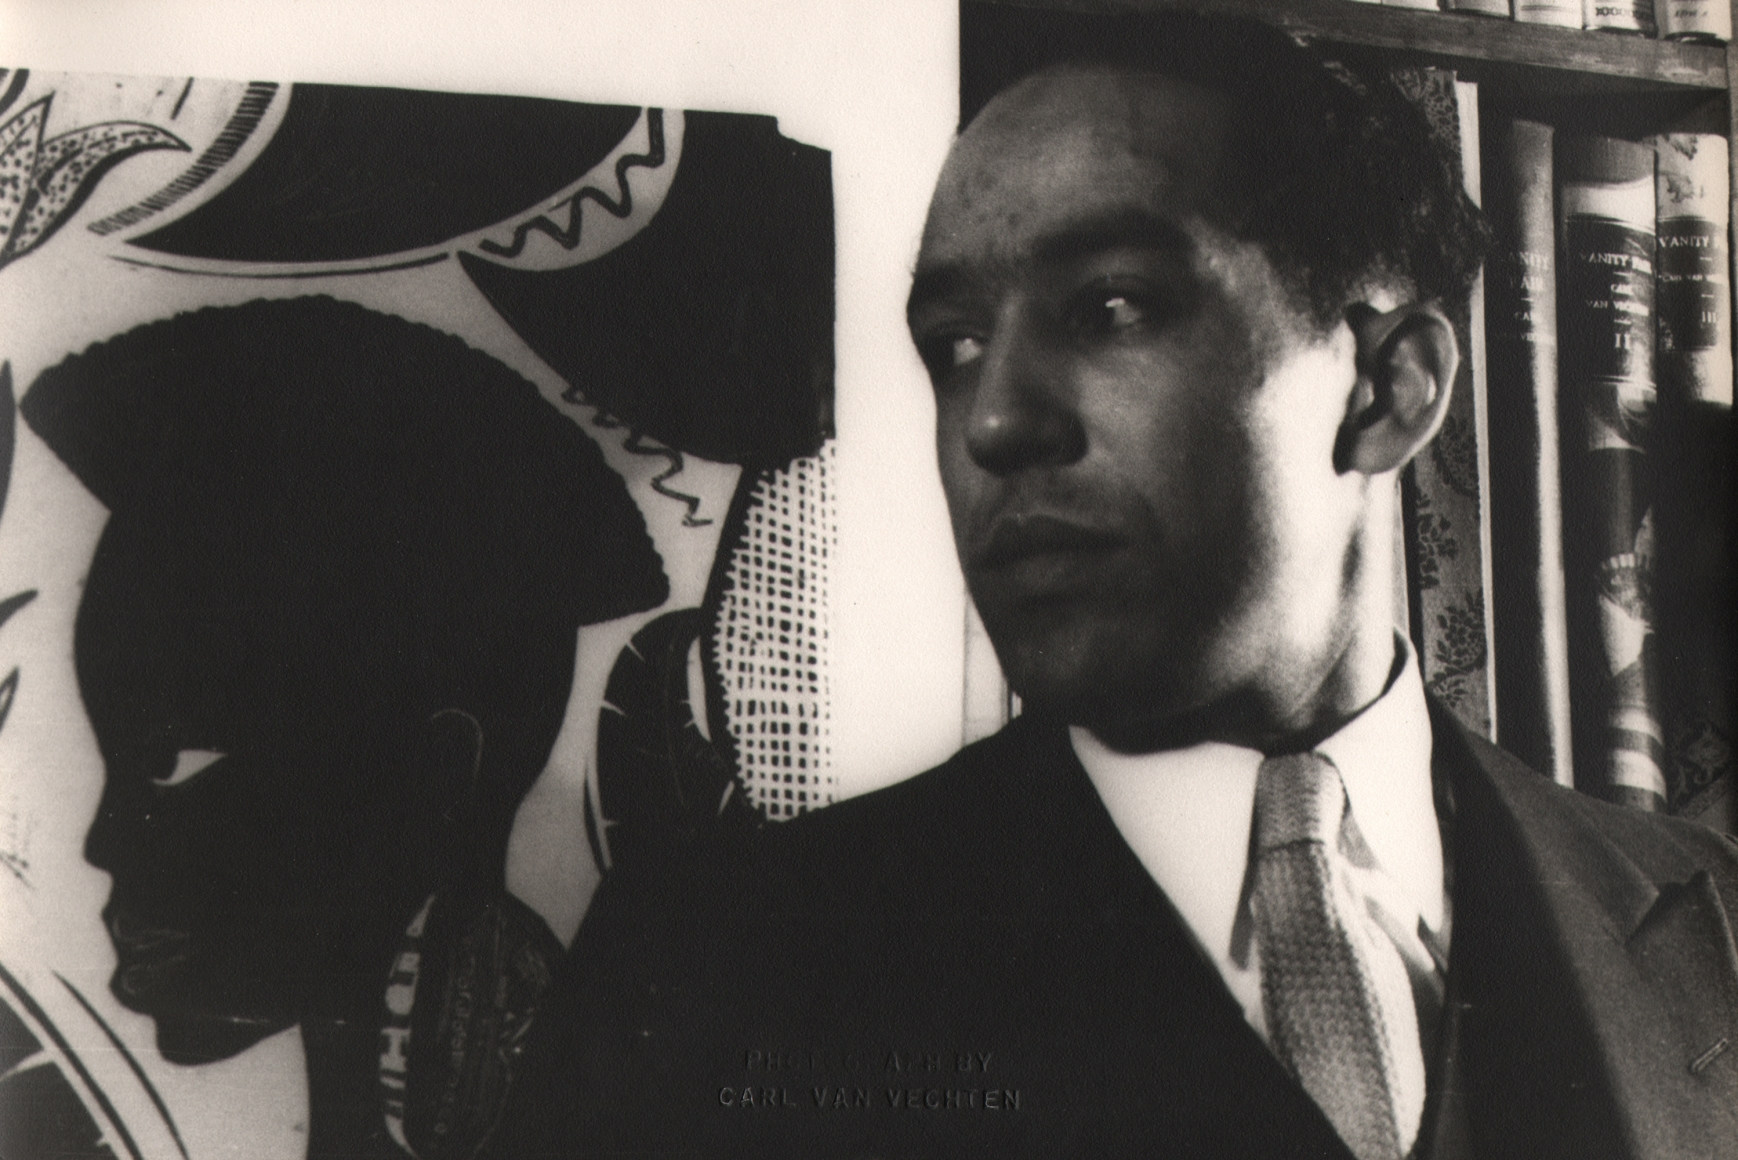 Carl Van Vechten, Langston Hughes, 1932. Subject poses looking to the left beside a painting with the figure in the same pose.